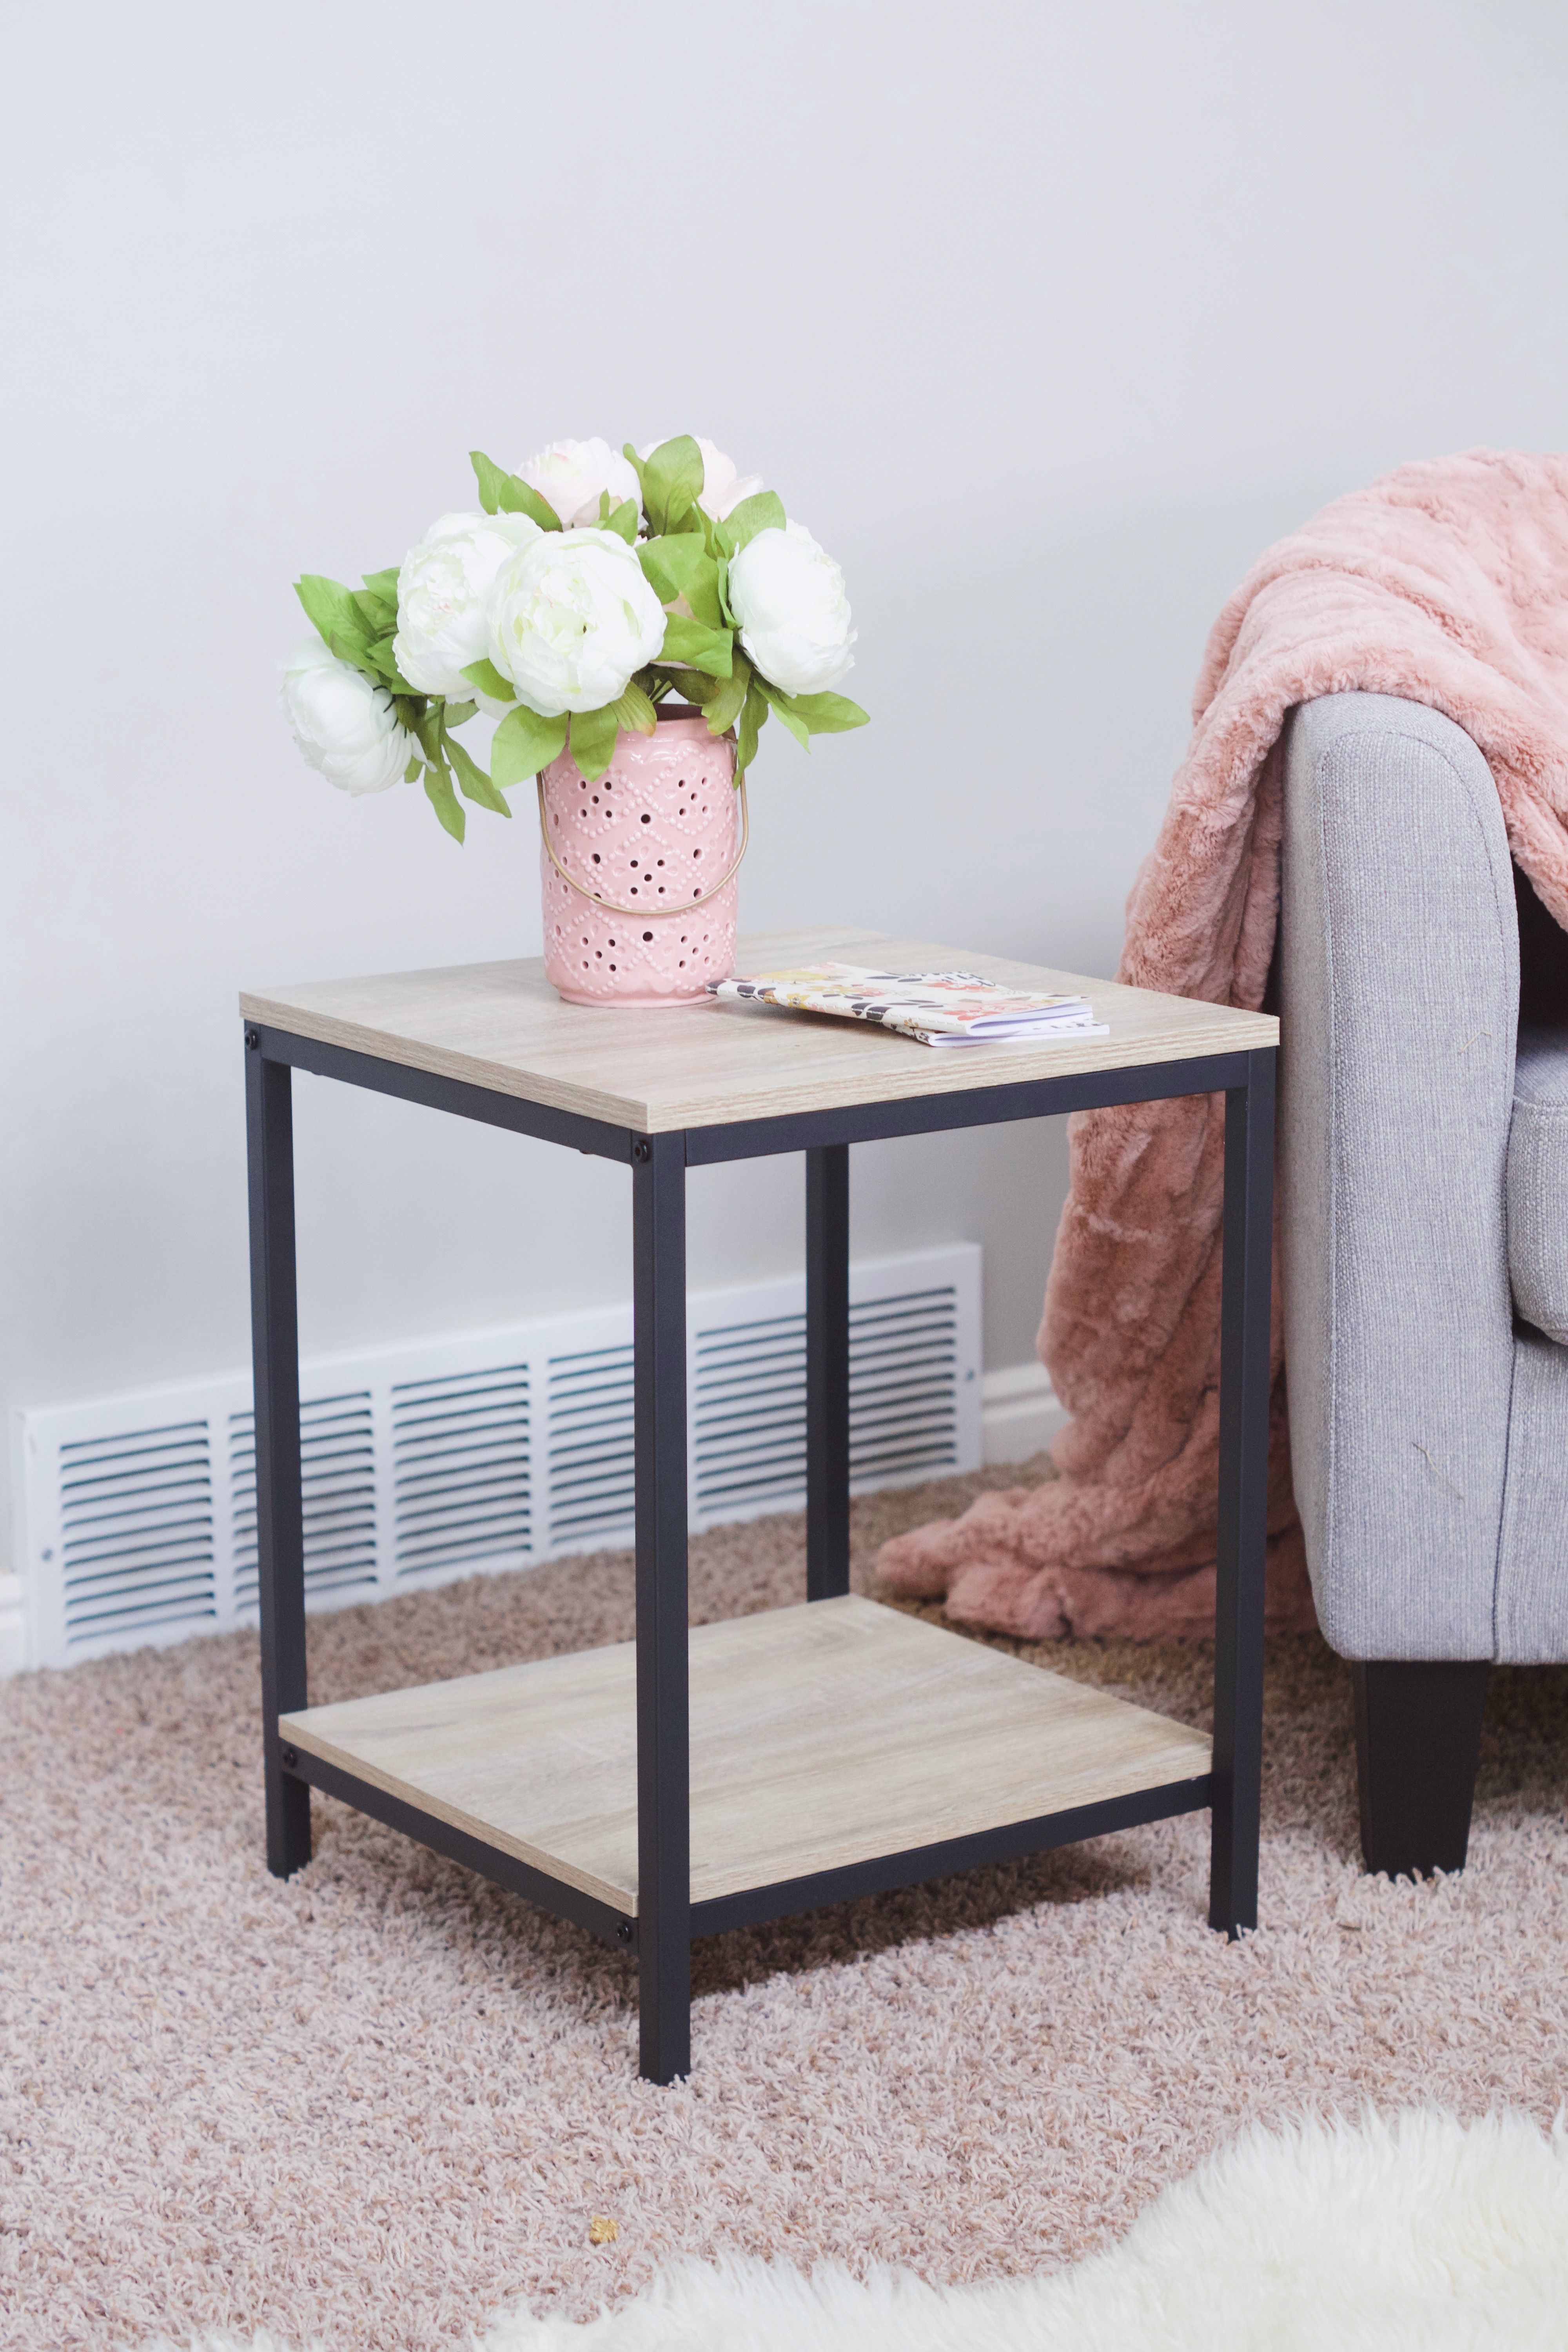 Swell Sauder North Avenue Side Table This Is One Of The Most Ncnpc Chair Design For Home Ncnpcorg